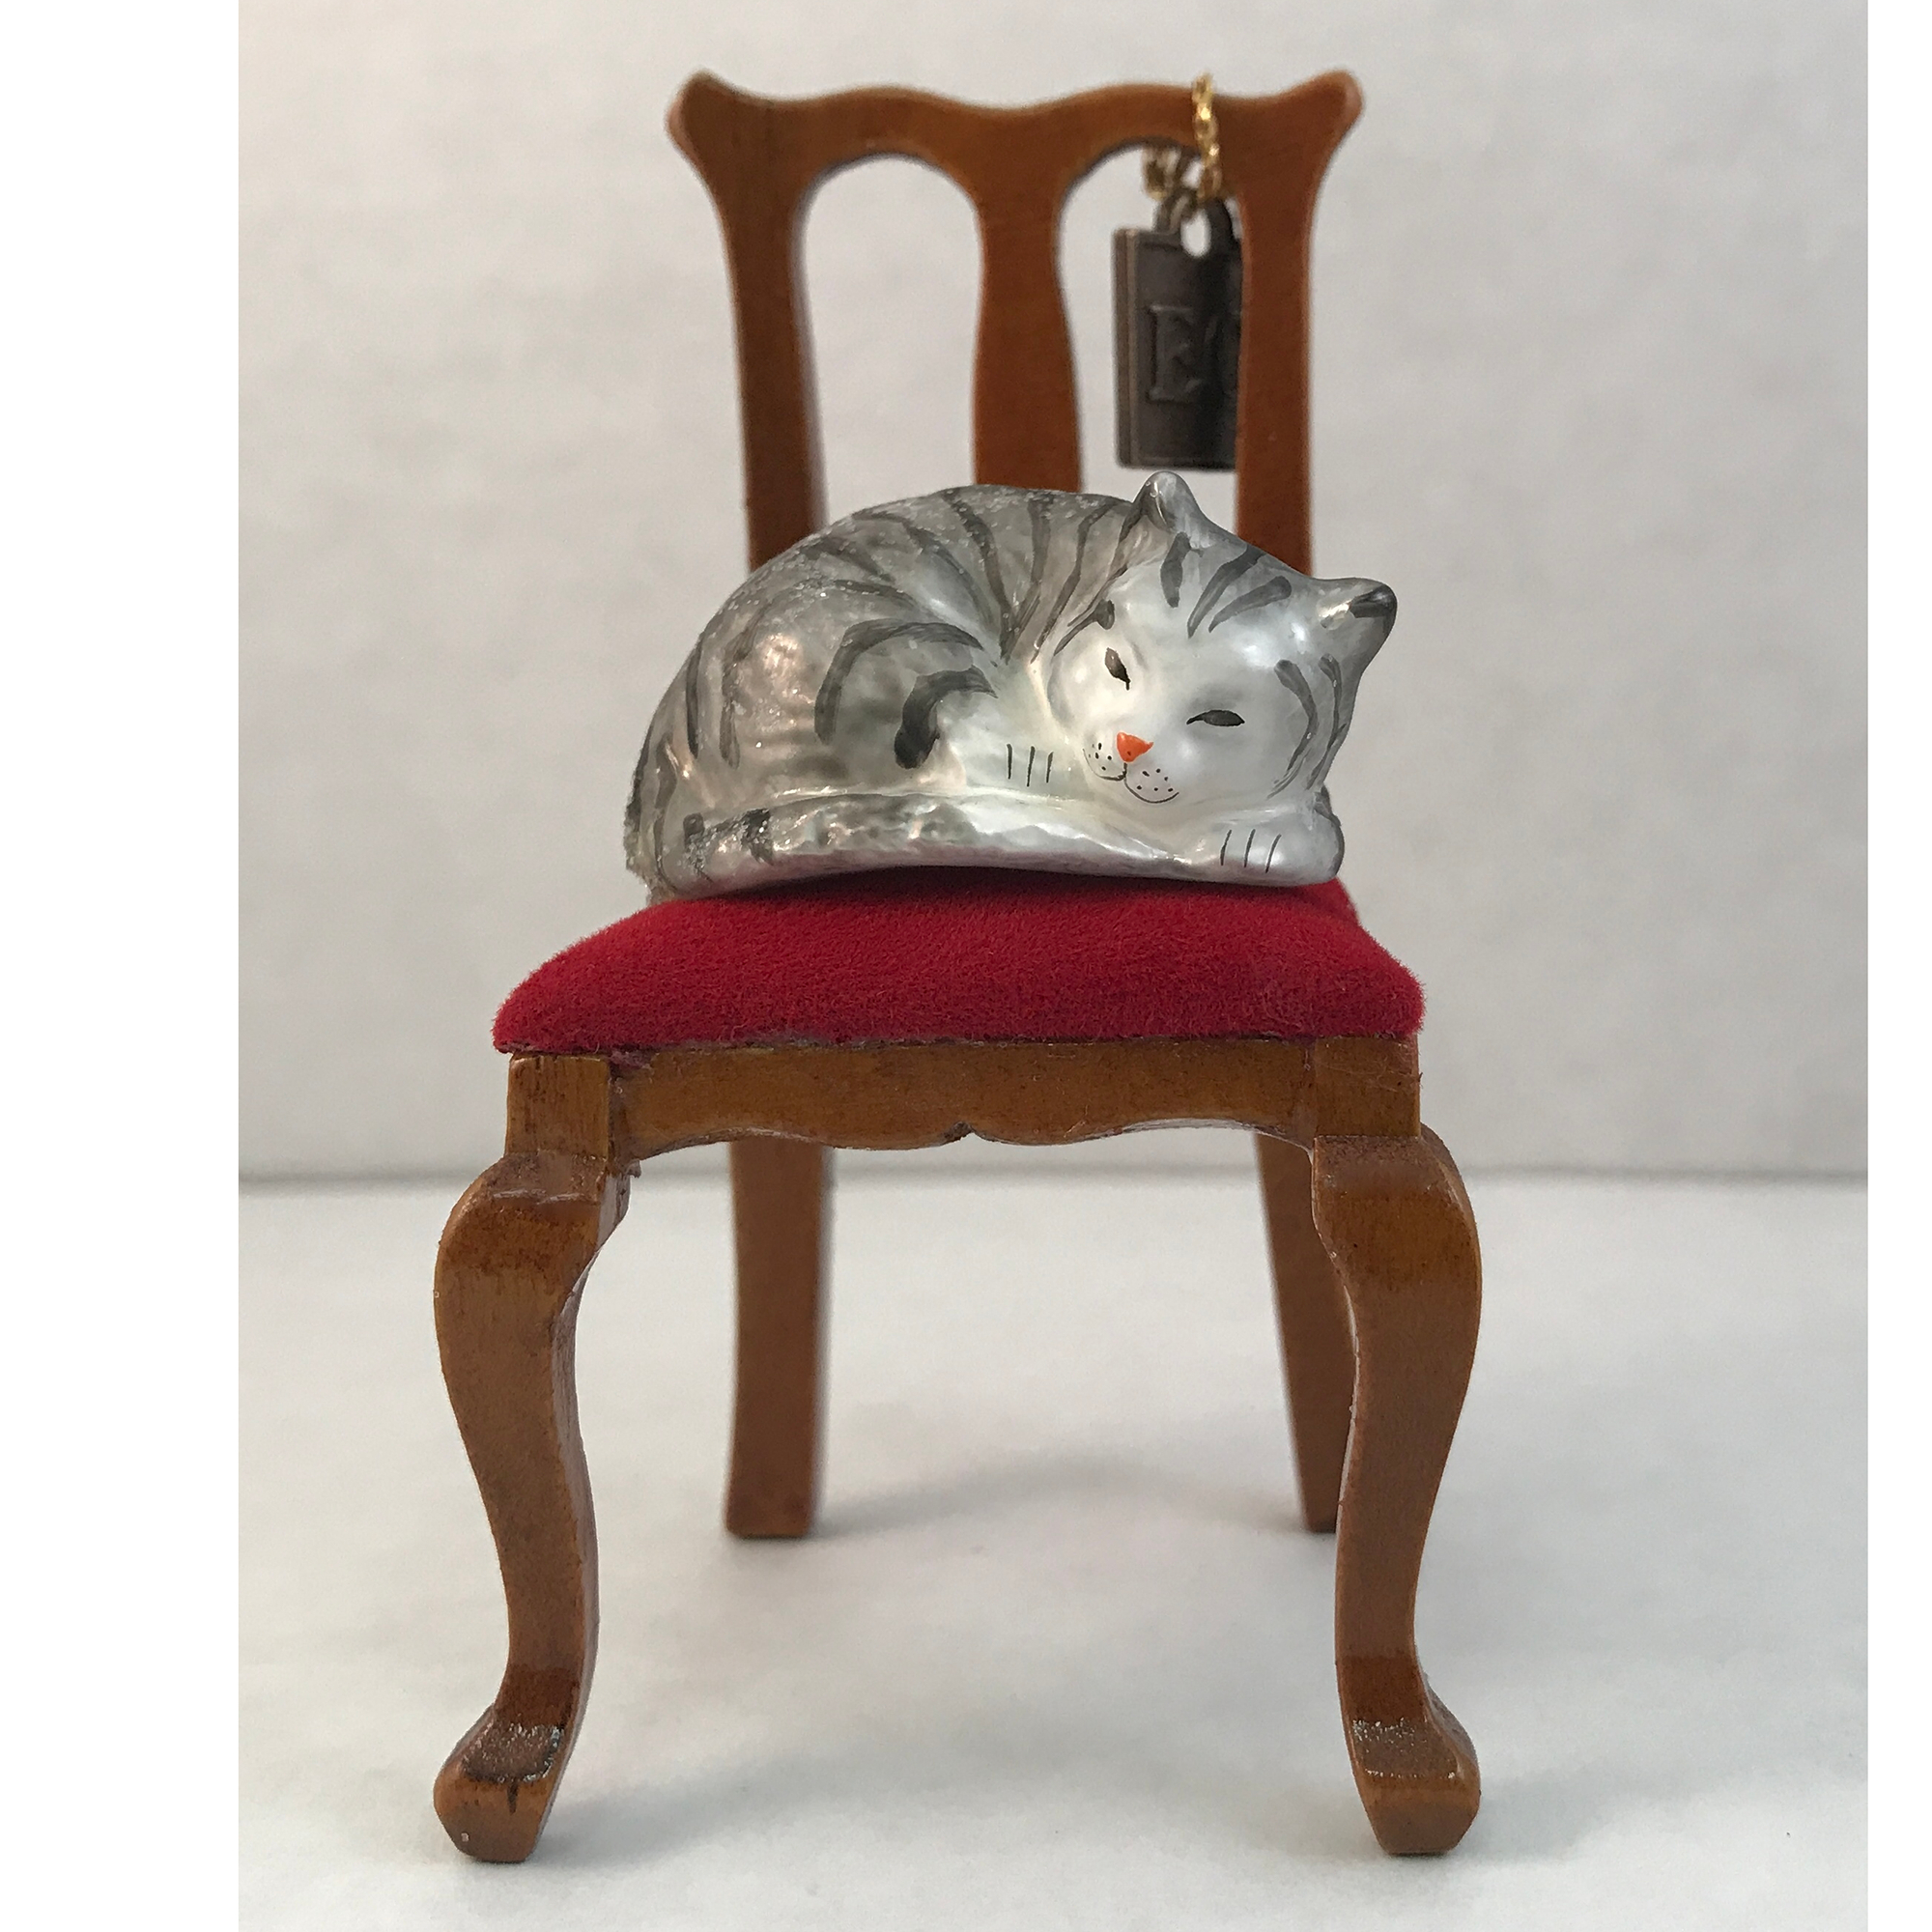 Eric Cortina Sleeping Kitty on Chair Christmas Ornament